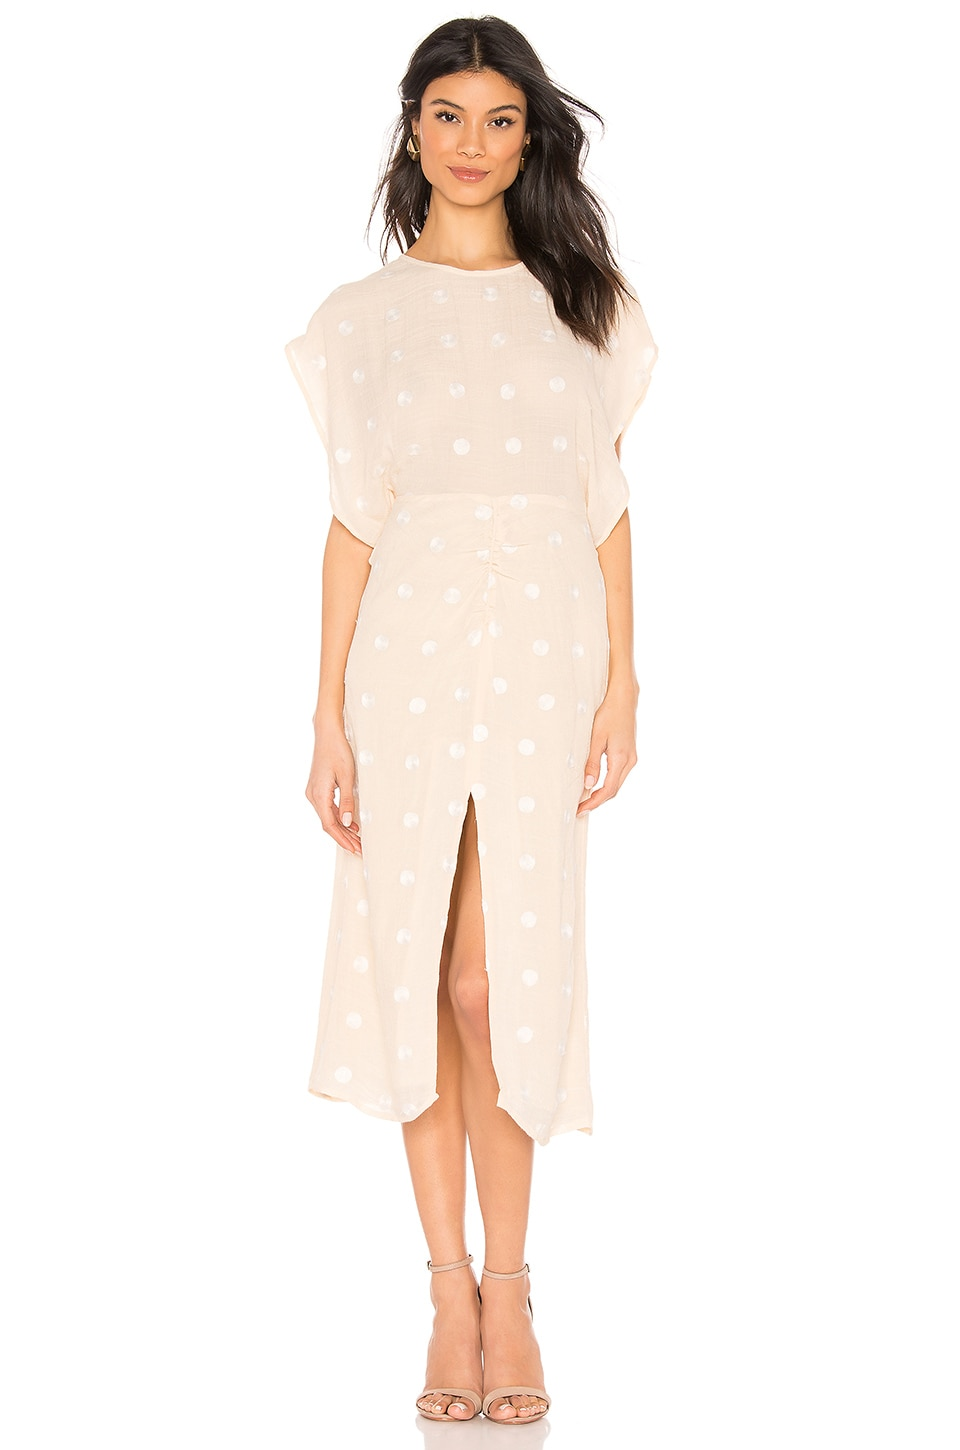 L'Academie The Phoebe Midi Dress in Beige & White Dot